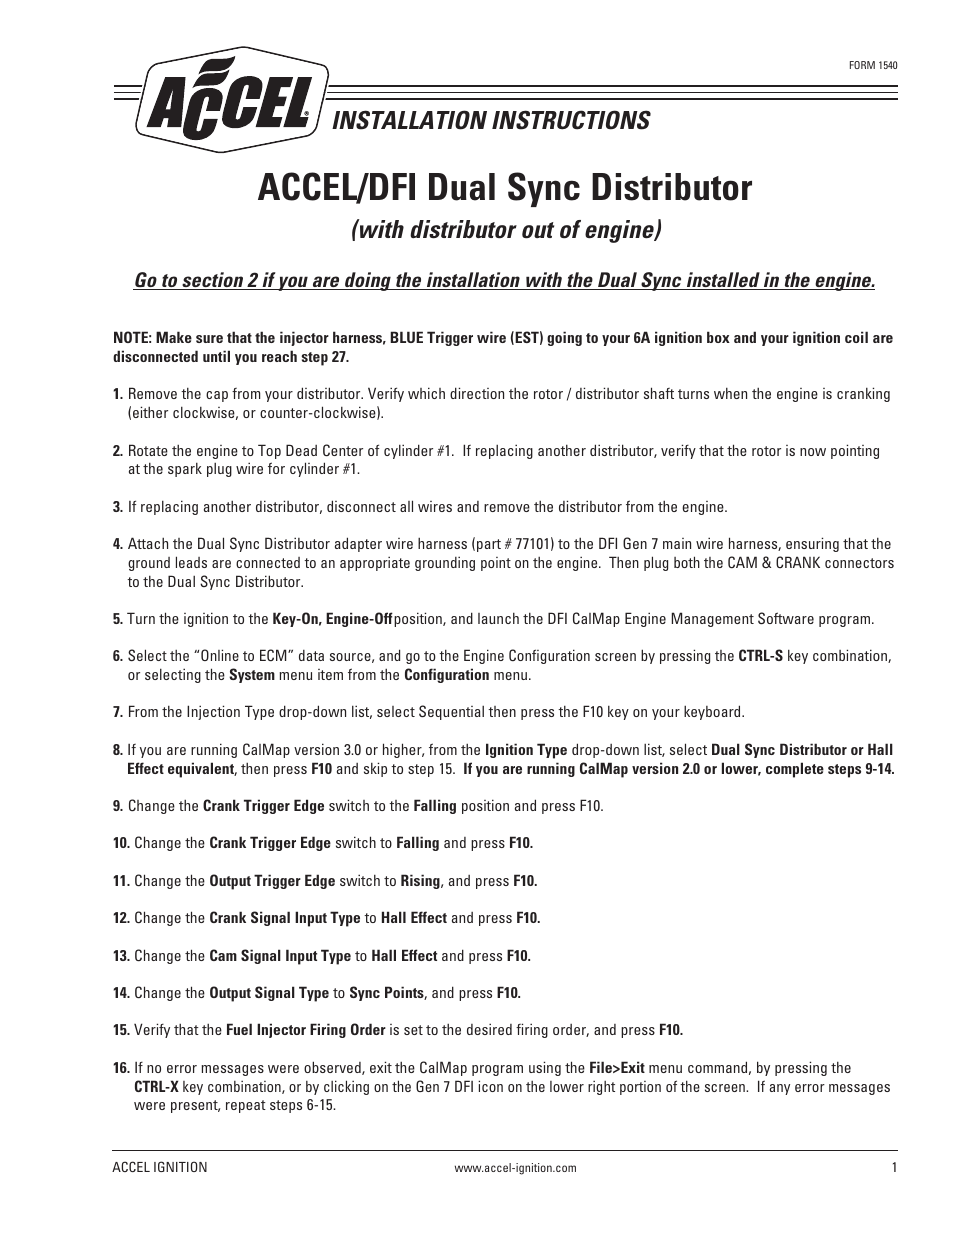 Accel Distributor Wiring Diagram 32 Images Points Eliminator Mallory Ignition Dfi Dual Sync 77100 Page1